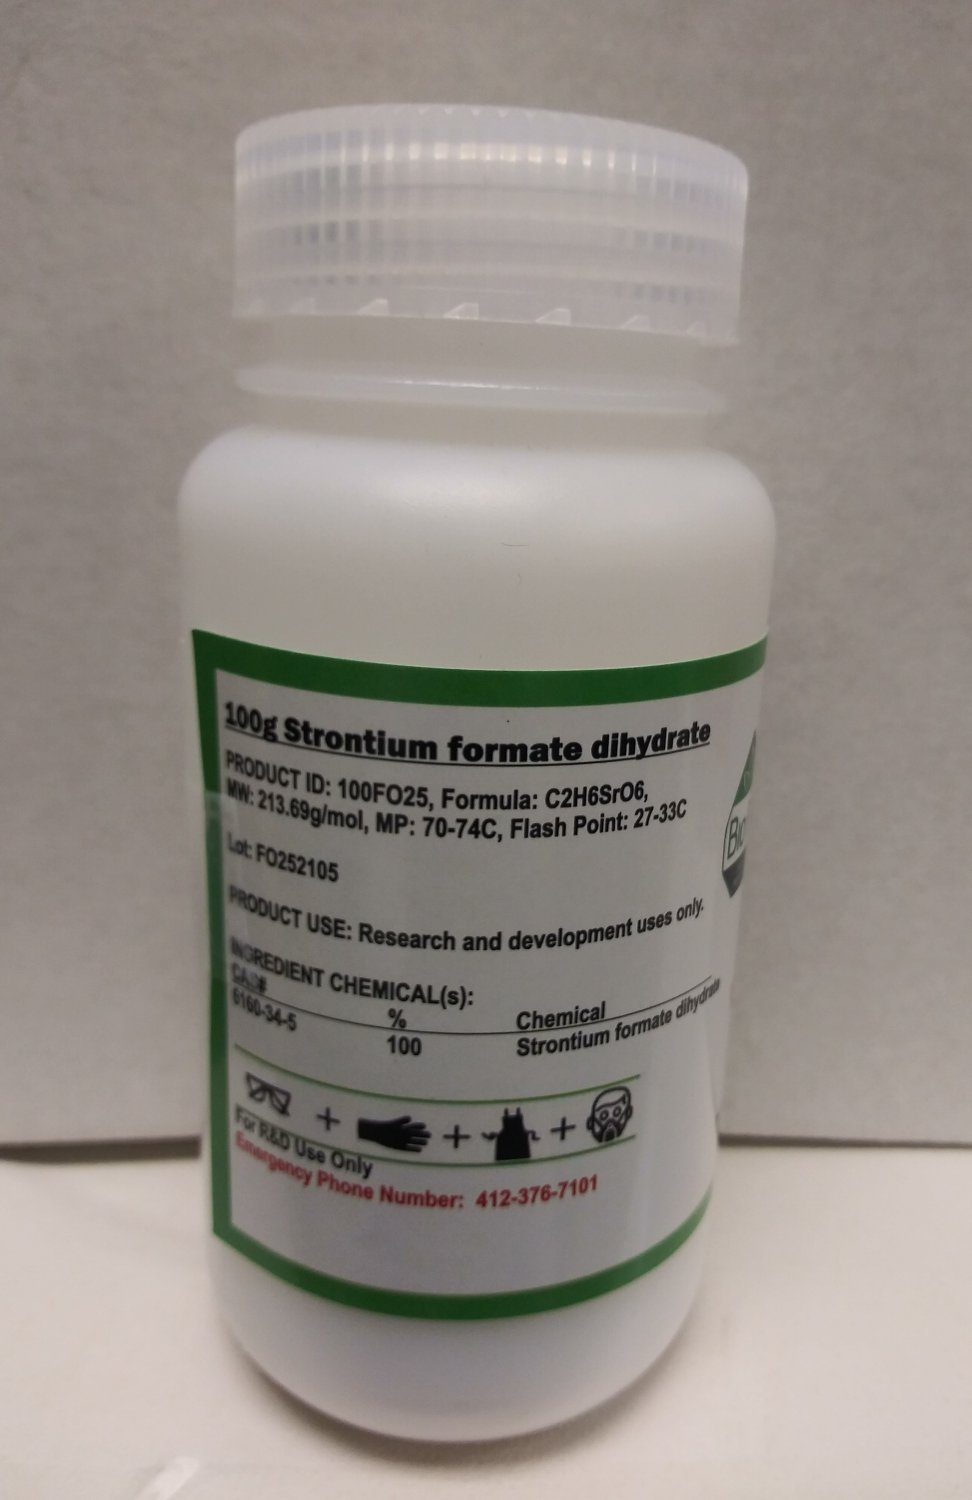 100g Strontium formate dihydrate